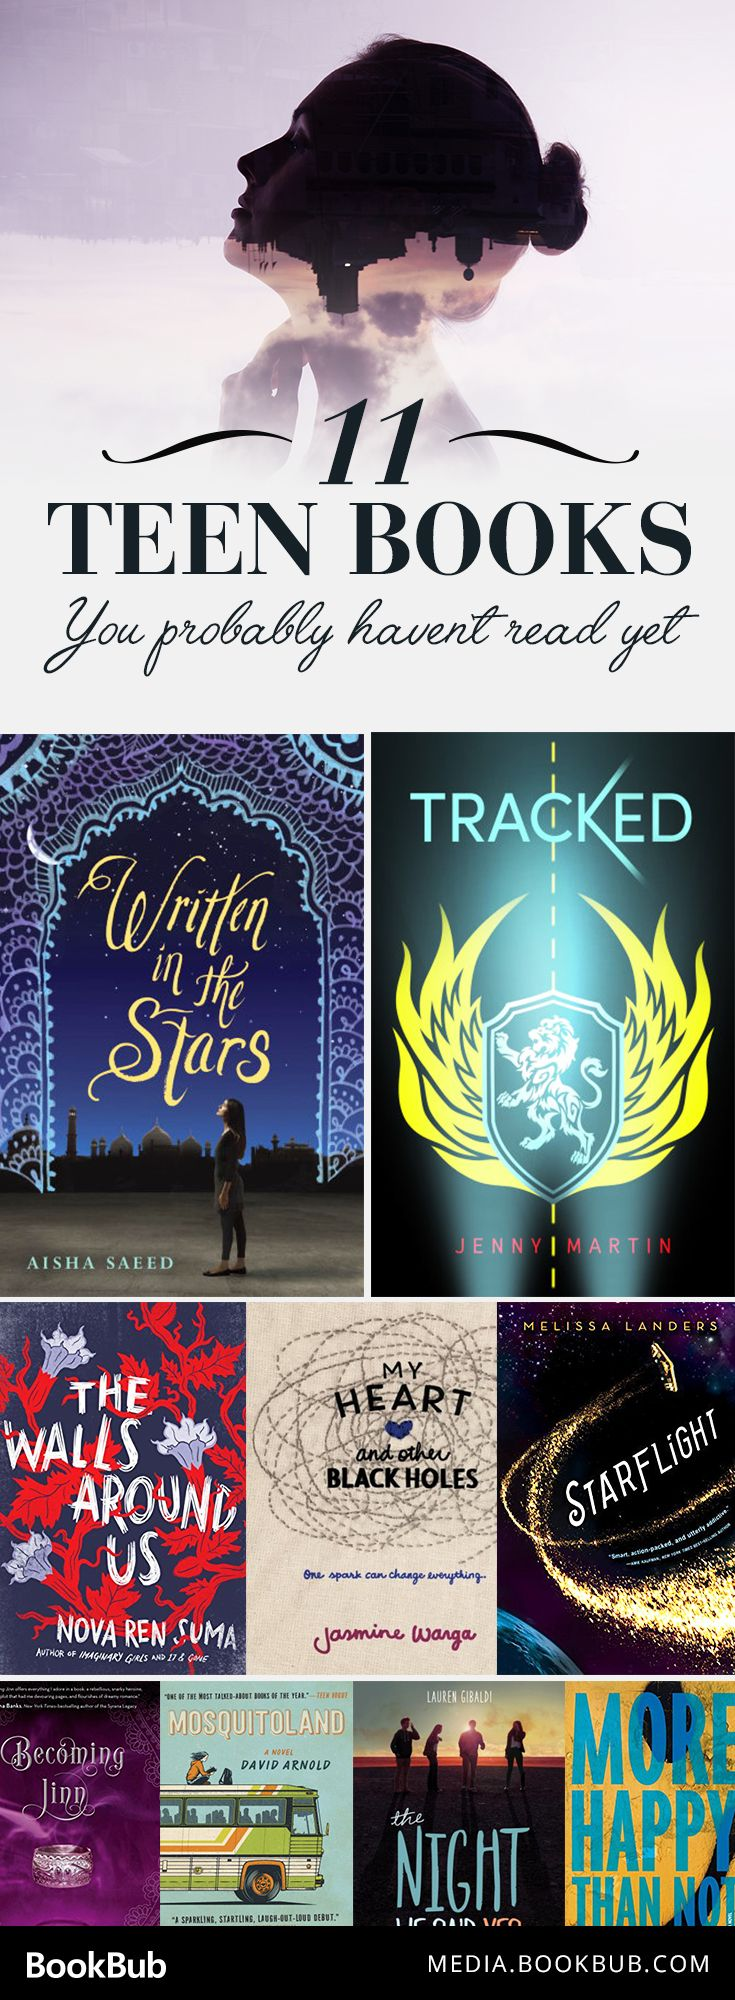 11 great books for teens. If you've already read The Hunger Games, The Fault in Our Stars, and Divergent, check out these books you might have missed.